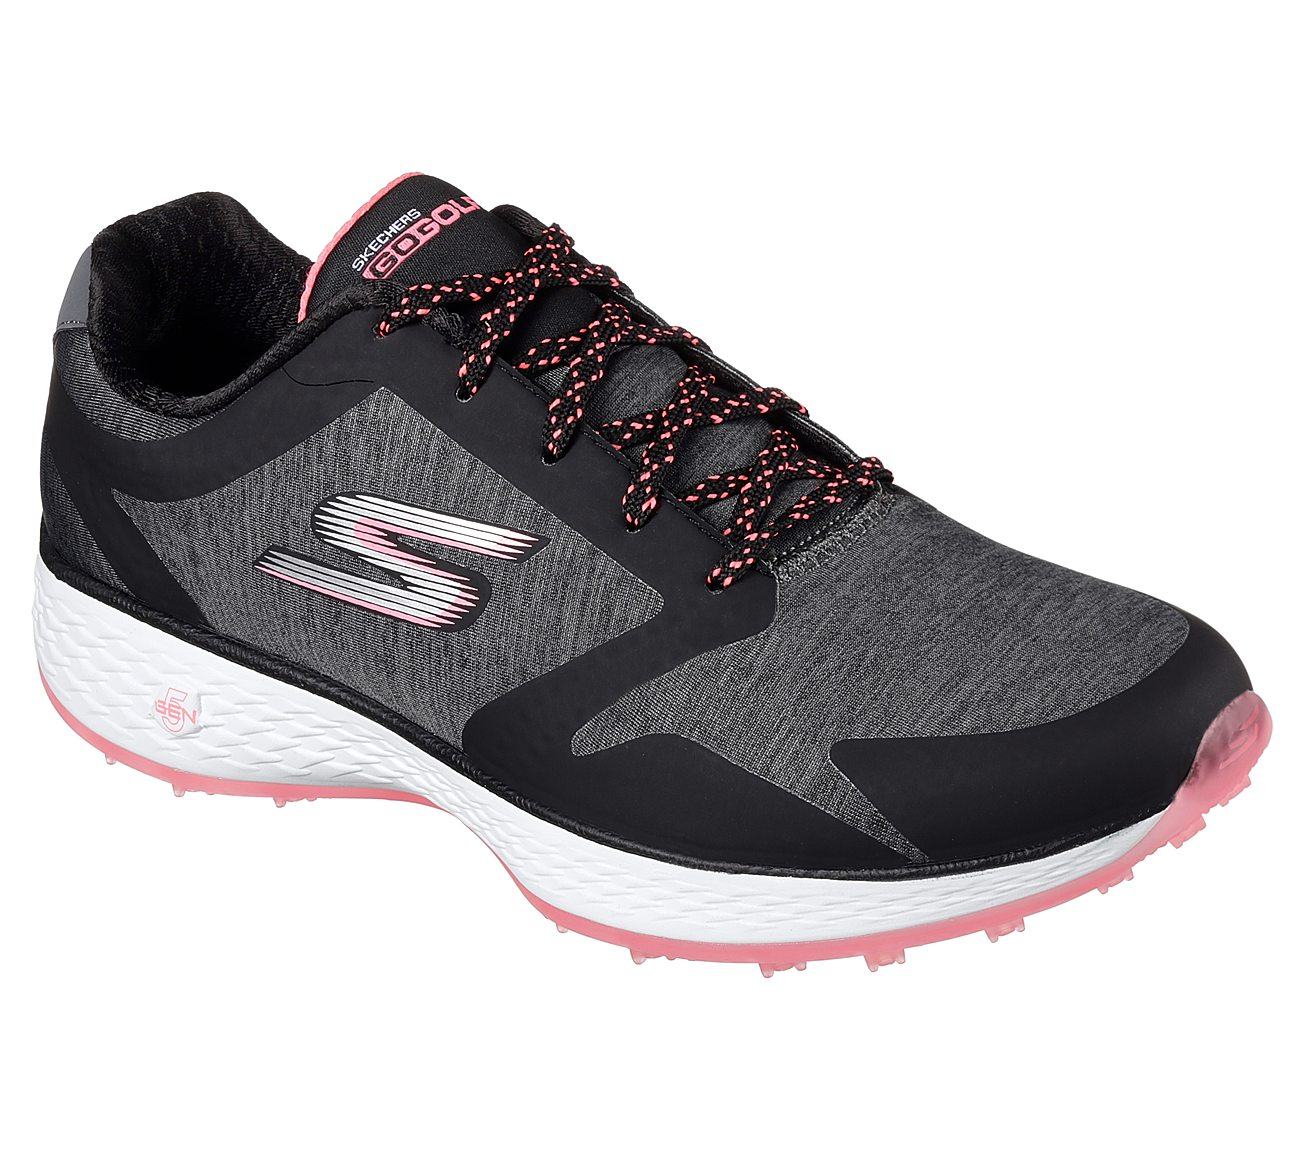 Skechers Women's Go Golf Famed Golf Shoe - Black/Pink